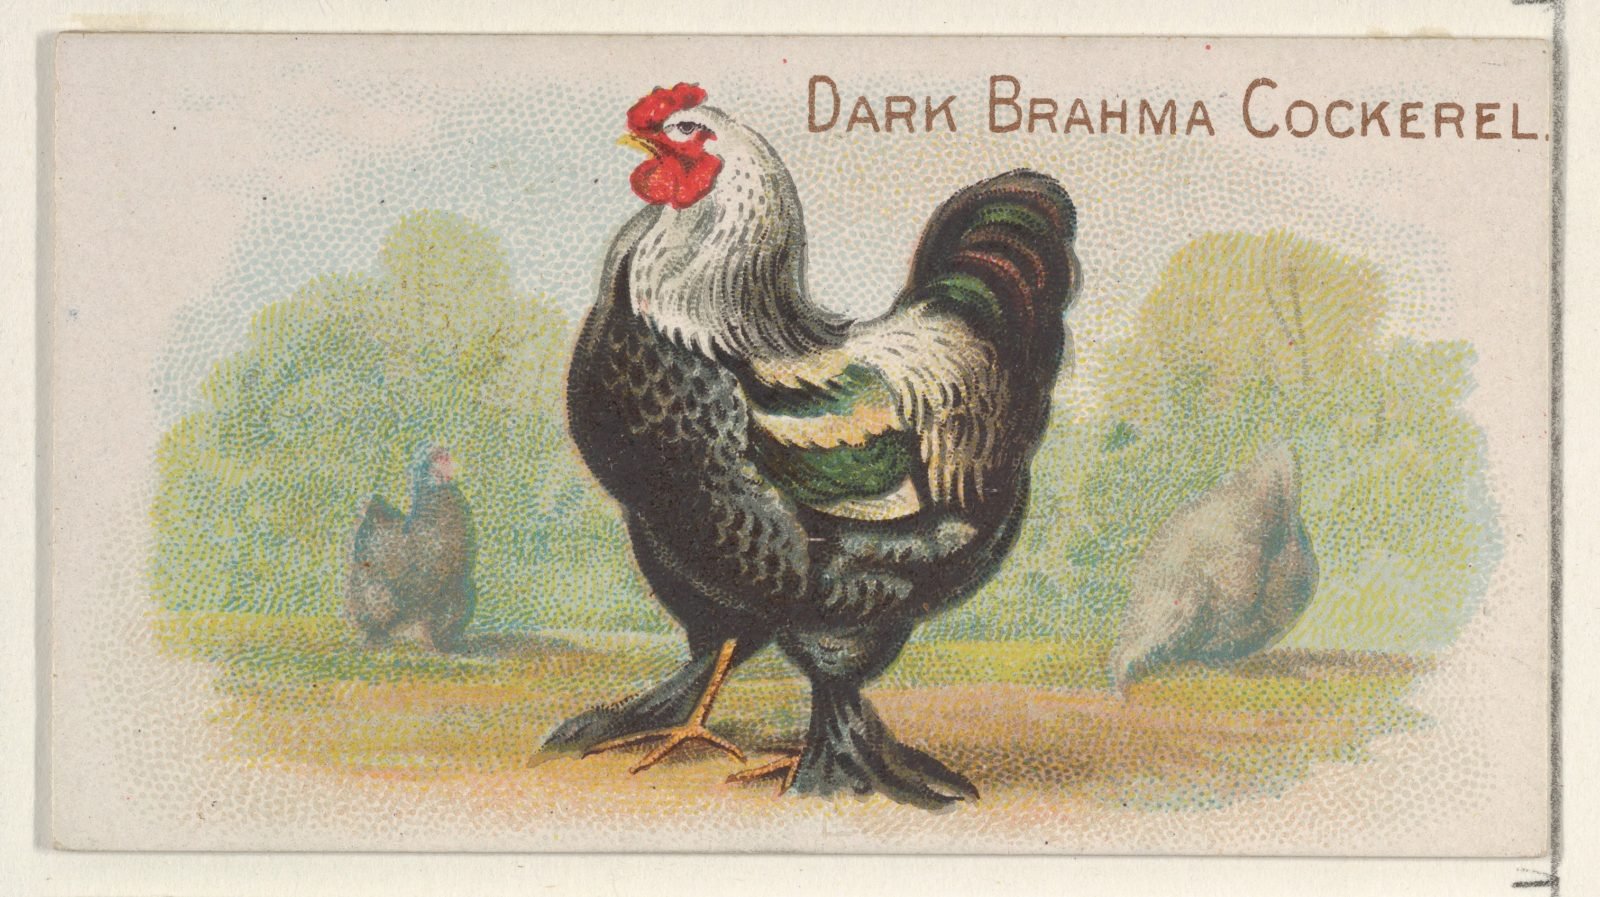 Dark Brahma Cockerel, from the Prize and Game Chickens series (N20) for Allen & Ginter Cigarettes